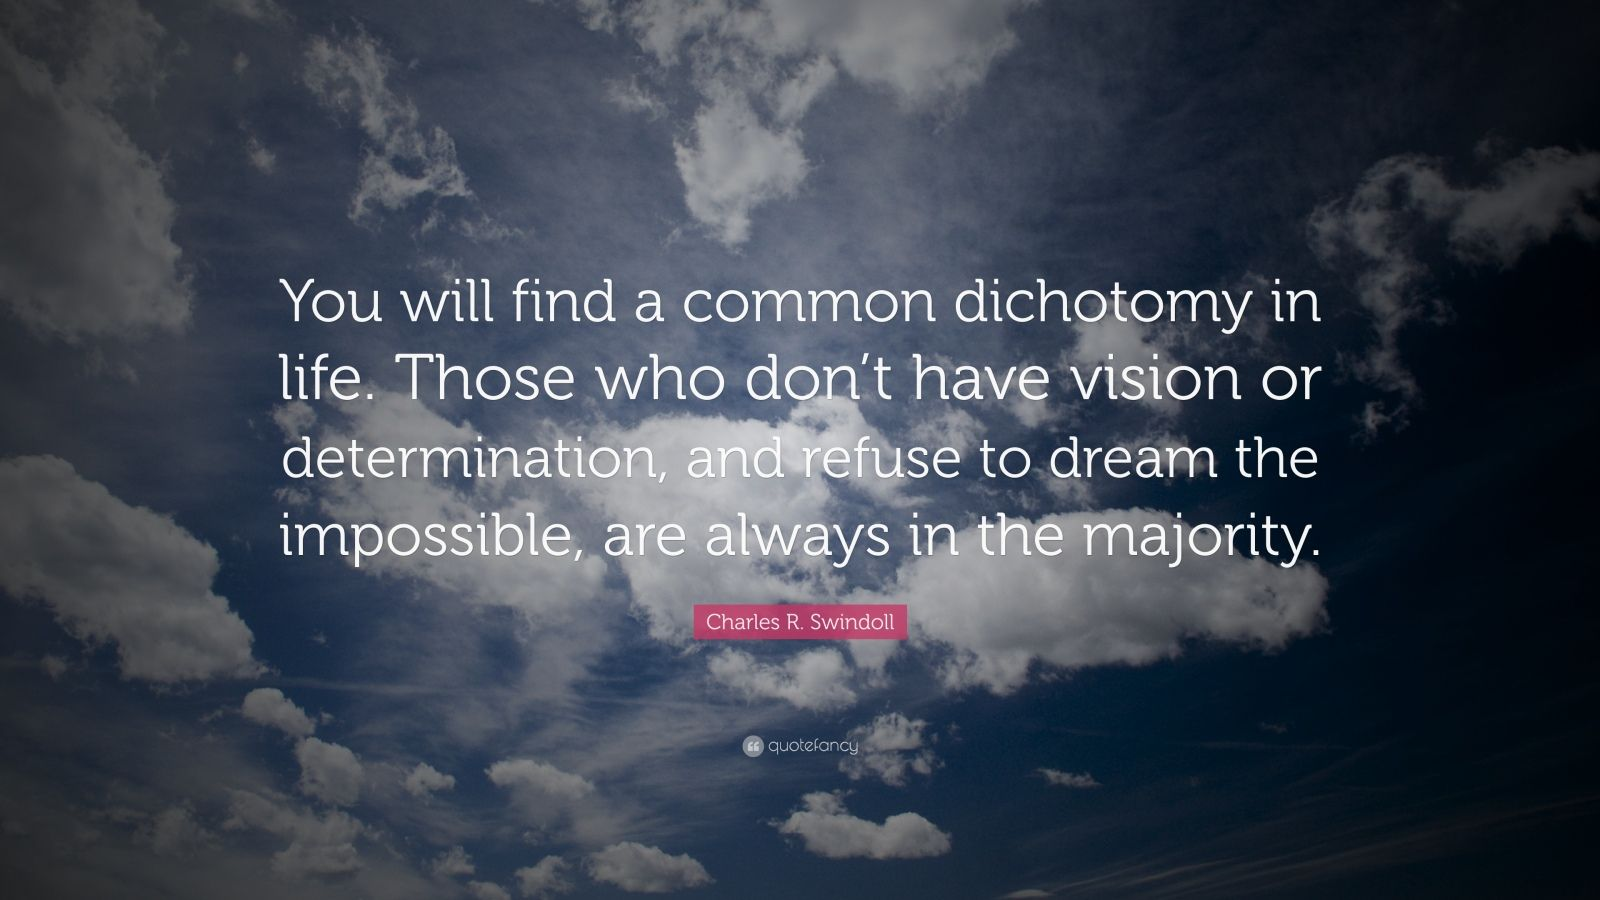 """Charles R. Swindoll Quote: """"You will find a common dichotomy in life. Those who don't have vision or determination, and refuse to dream the impossible, are always in the majority."""""""